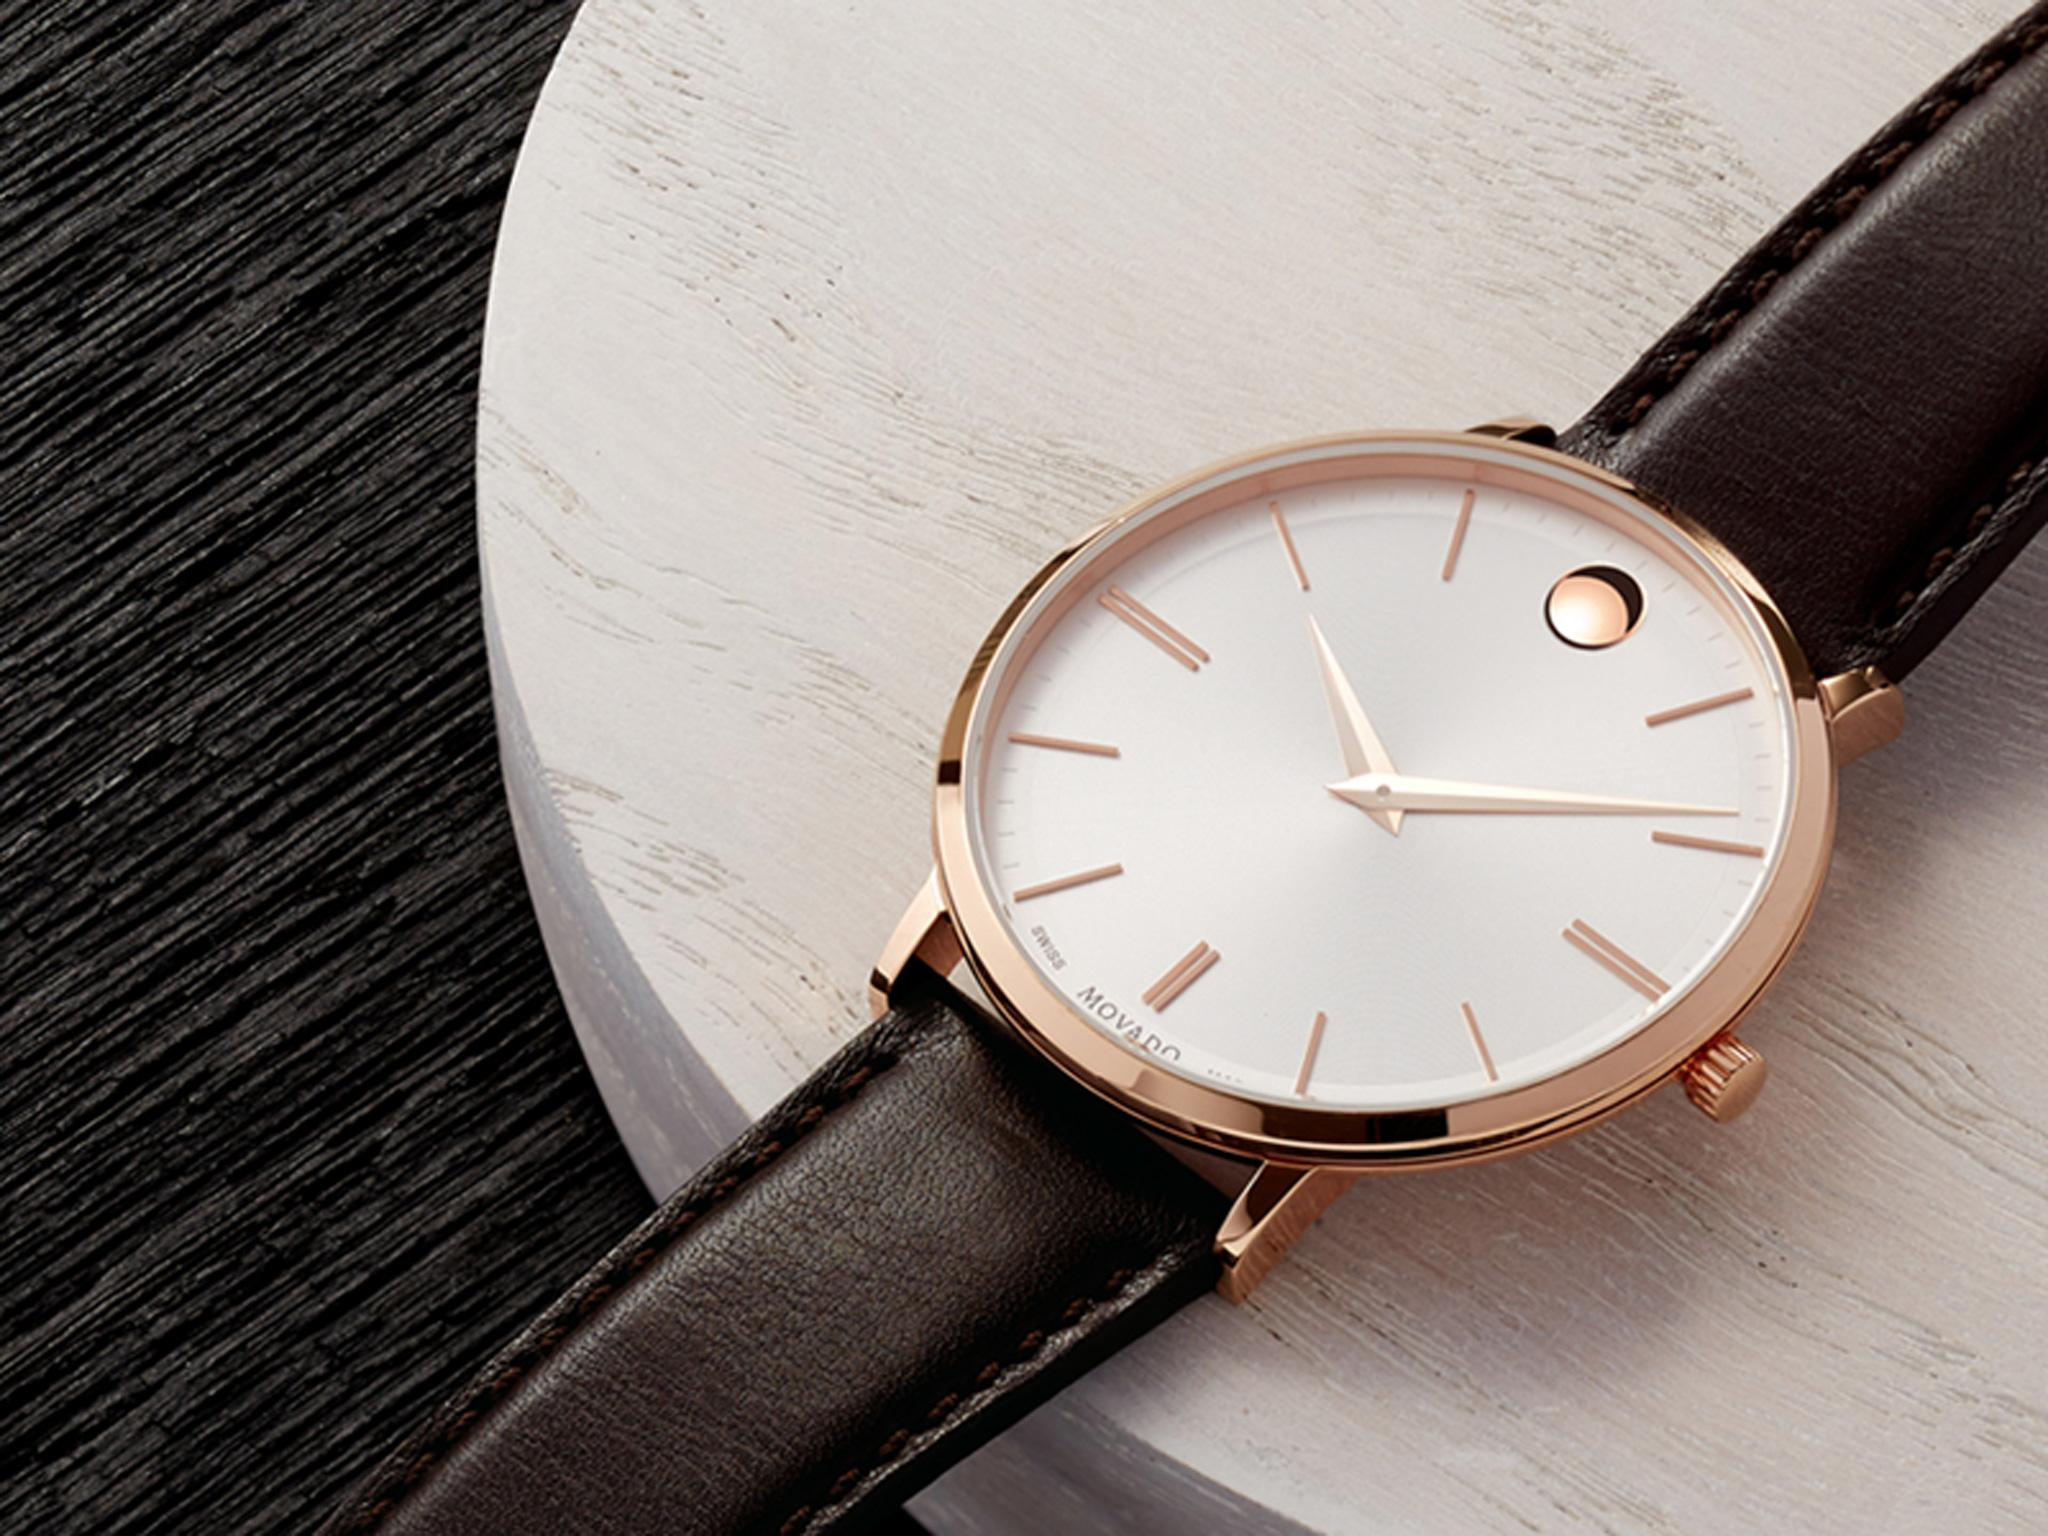 look sjx out sustainable the icon watches baume richemont crowdfunded tries with watch